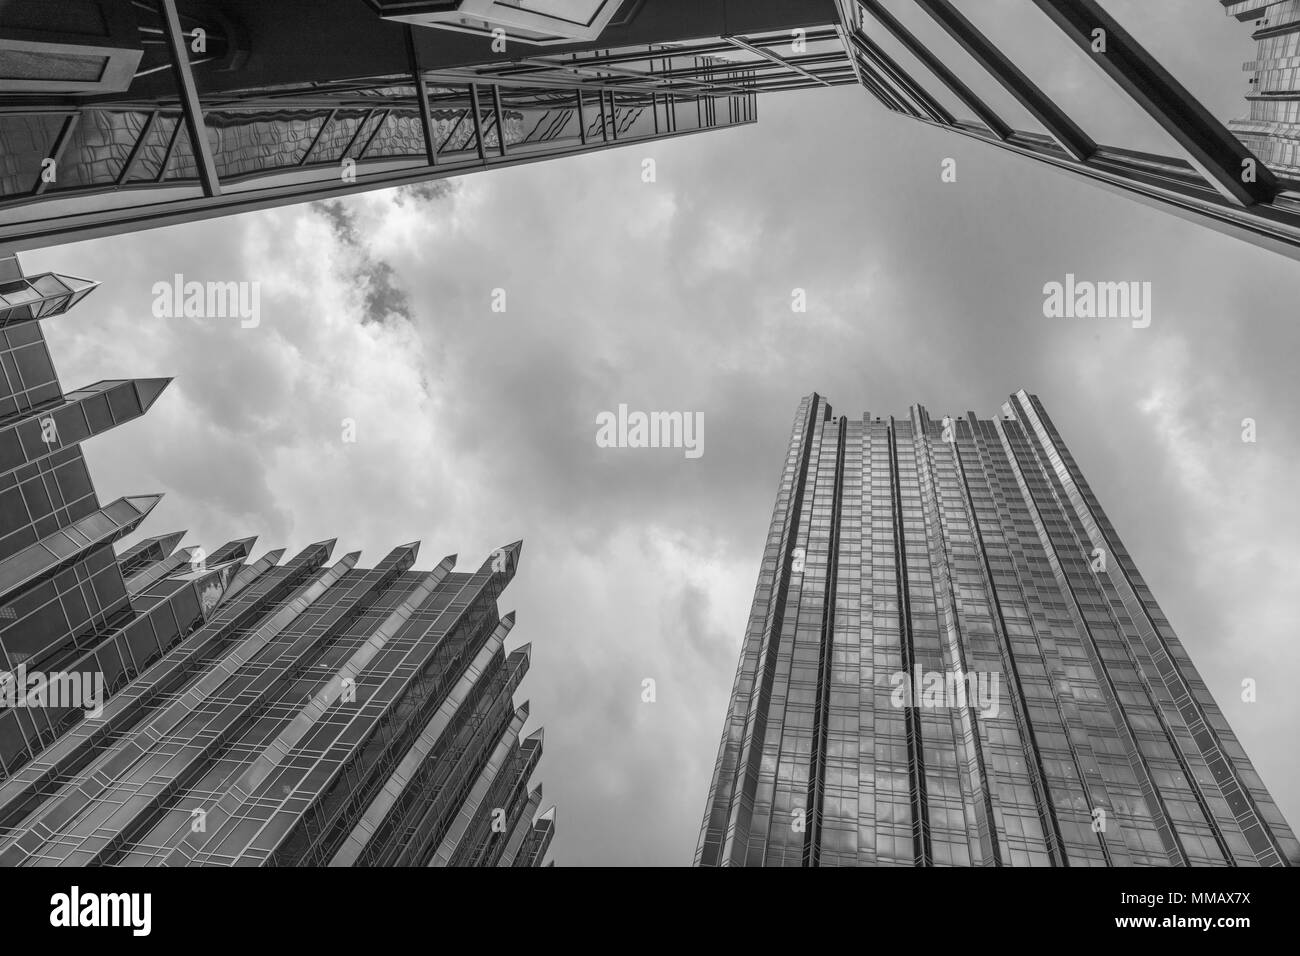 PPG Place, designed by Philip Johnson, in downtown Pittsburgh, PA, USA - Stock Image